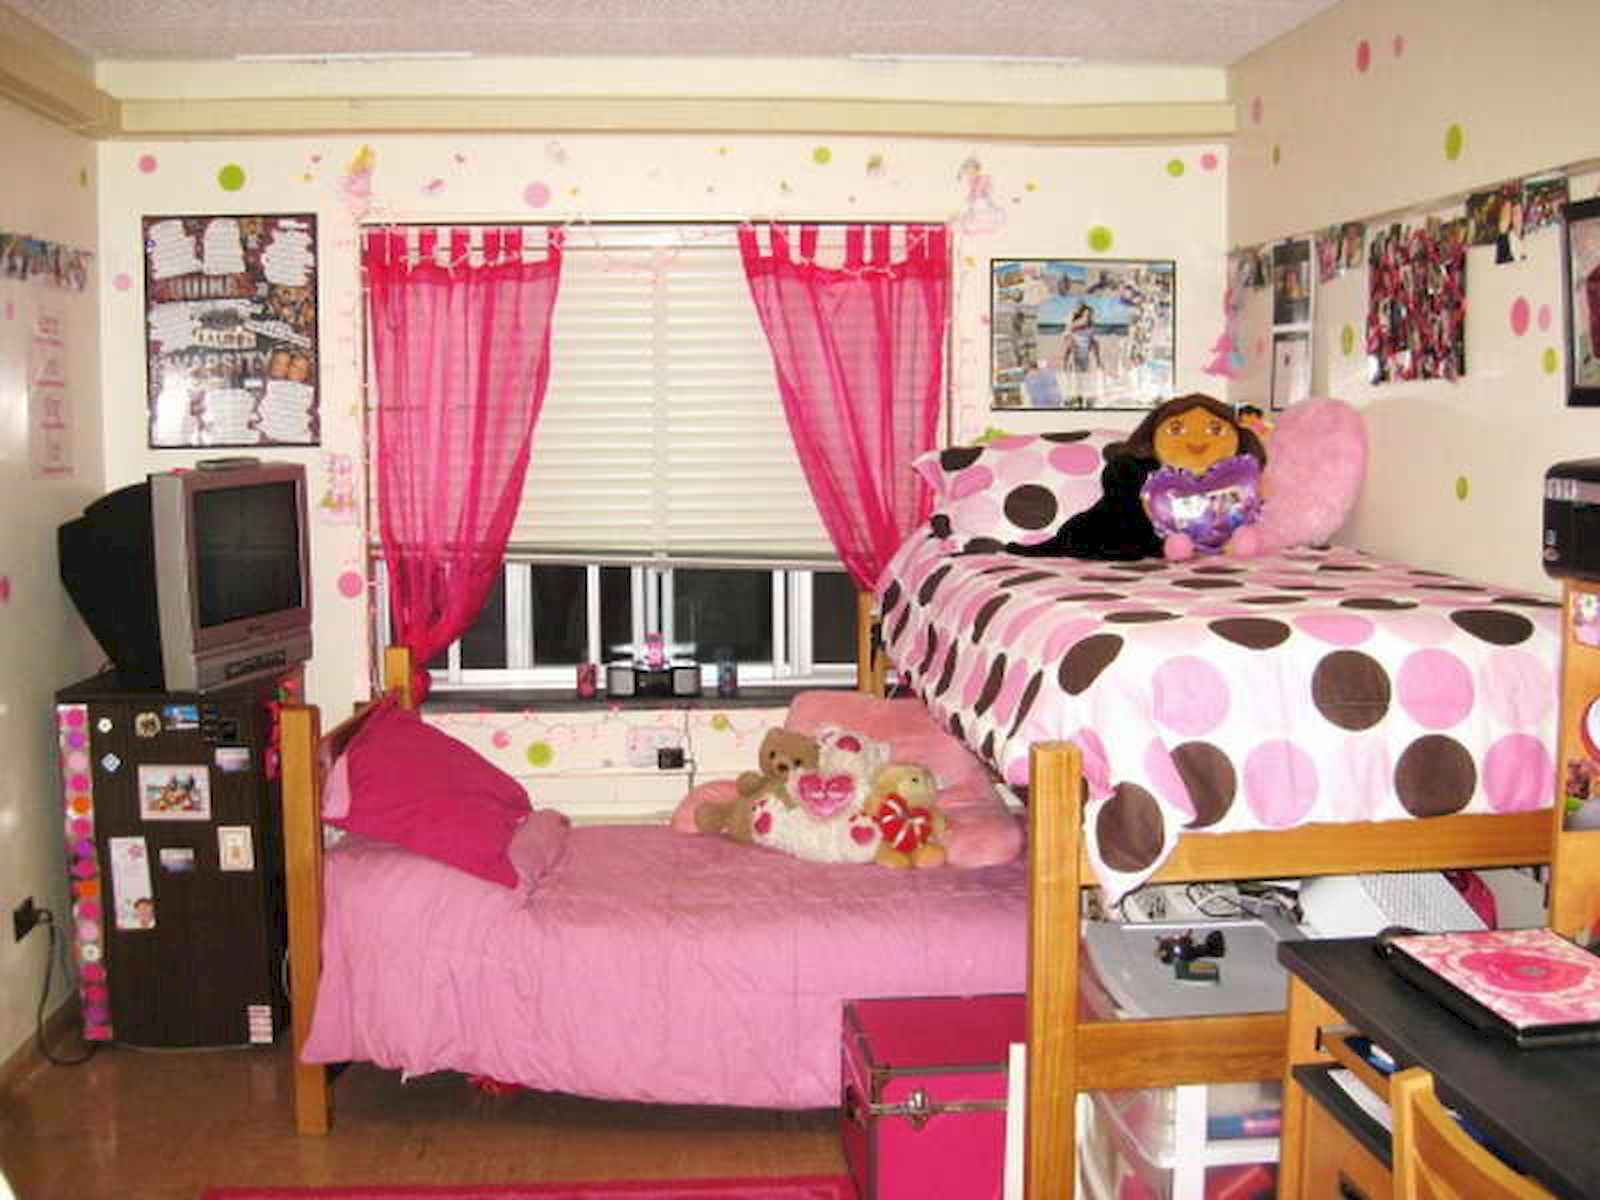 60 Gorgeous College Dorm Room Decorating Ideas And Makeover (44)